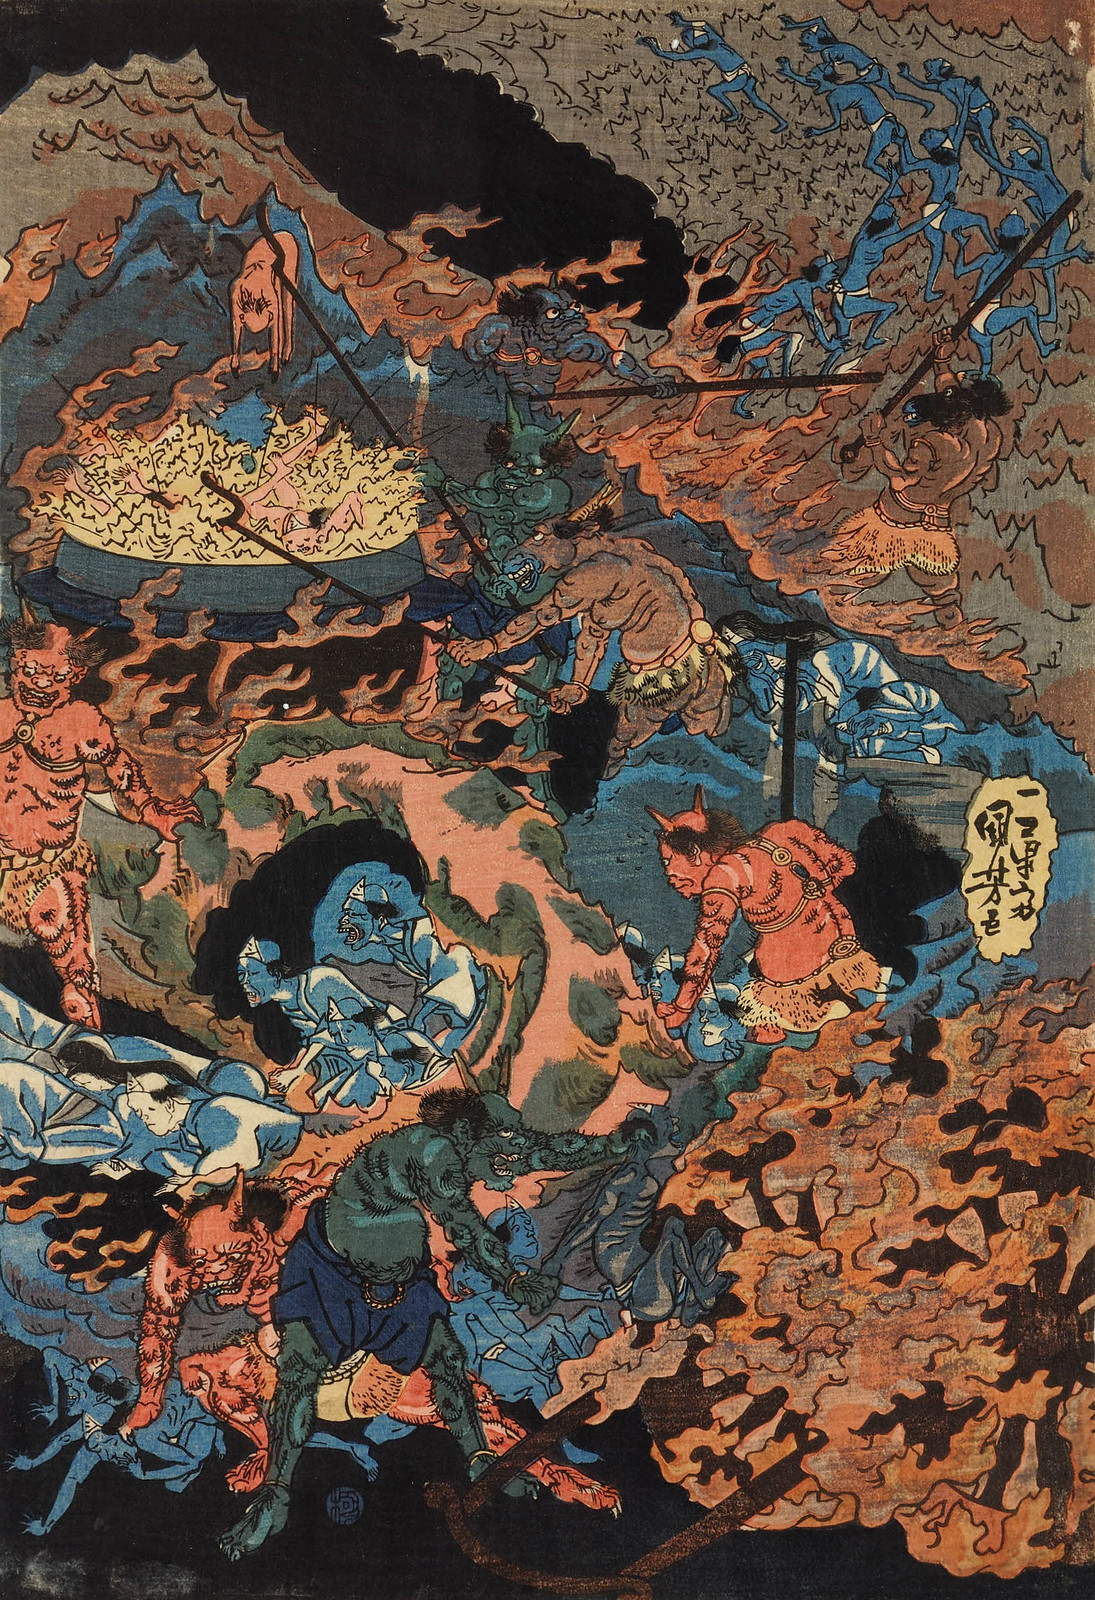 Utagawa Kuniyoshi - Various ghosts, devil-like figures, and the King of Hell lording over his domain, Edo Period (middle panel)